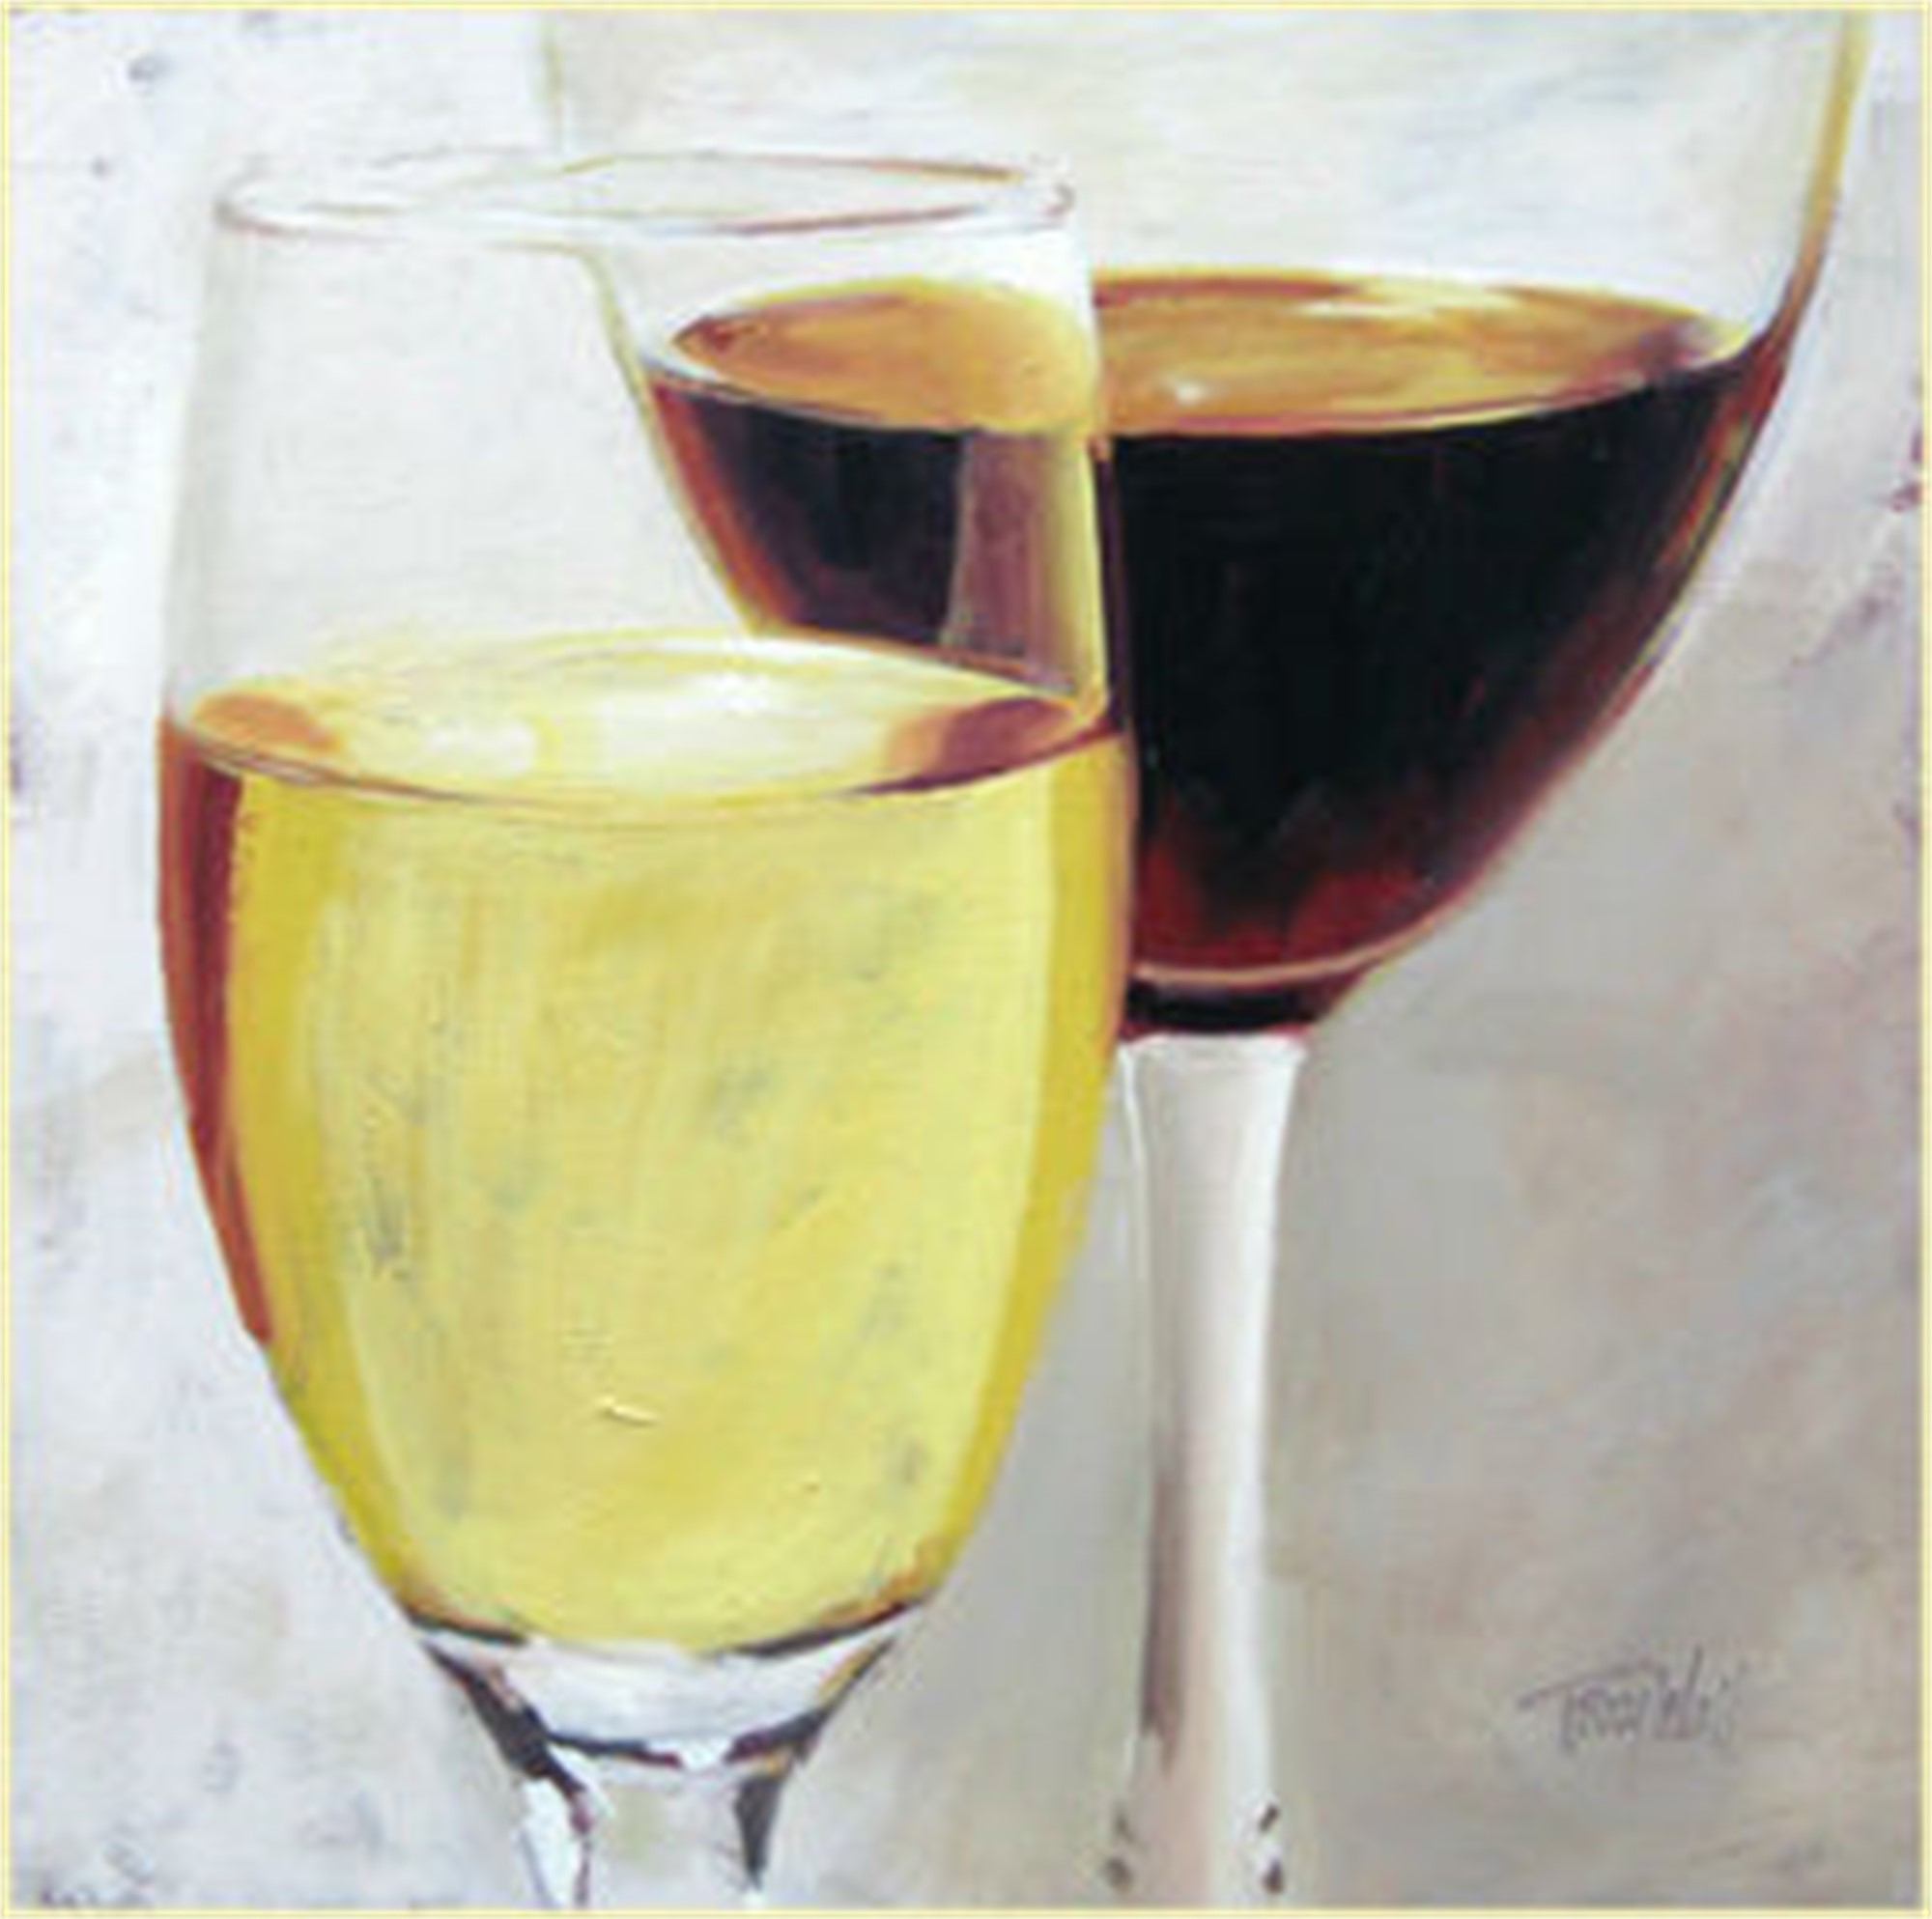 Pinot Grigio and Cab by Tracy Wall